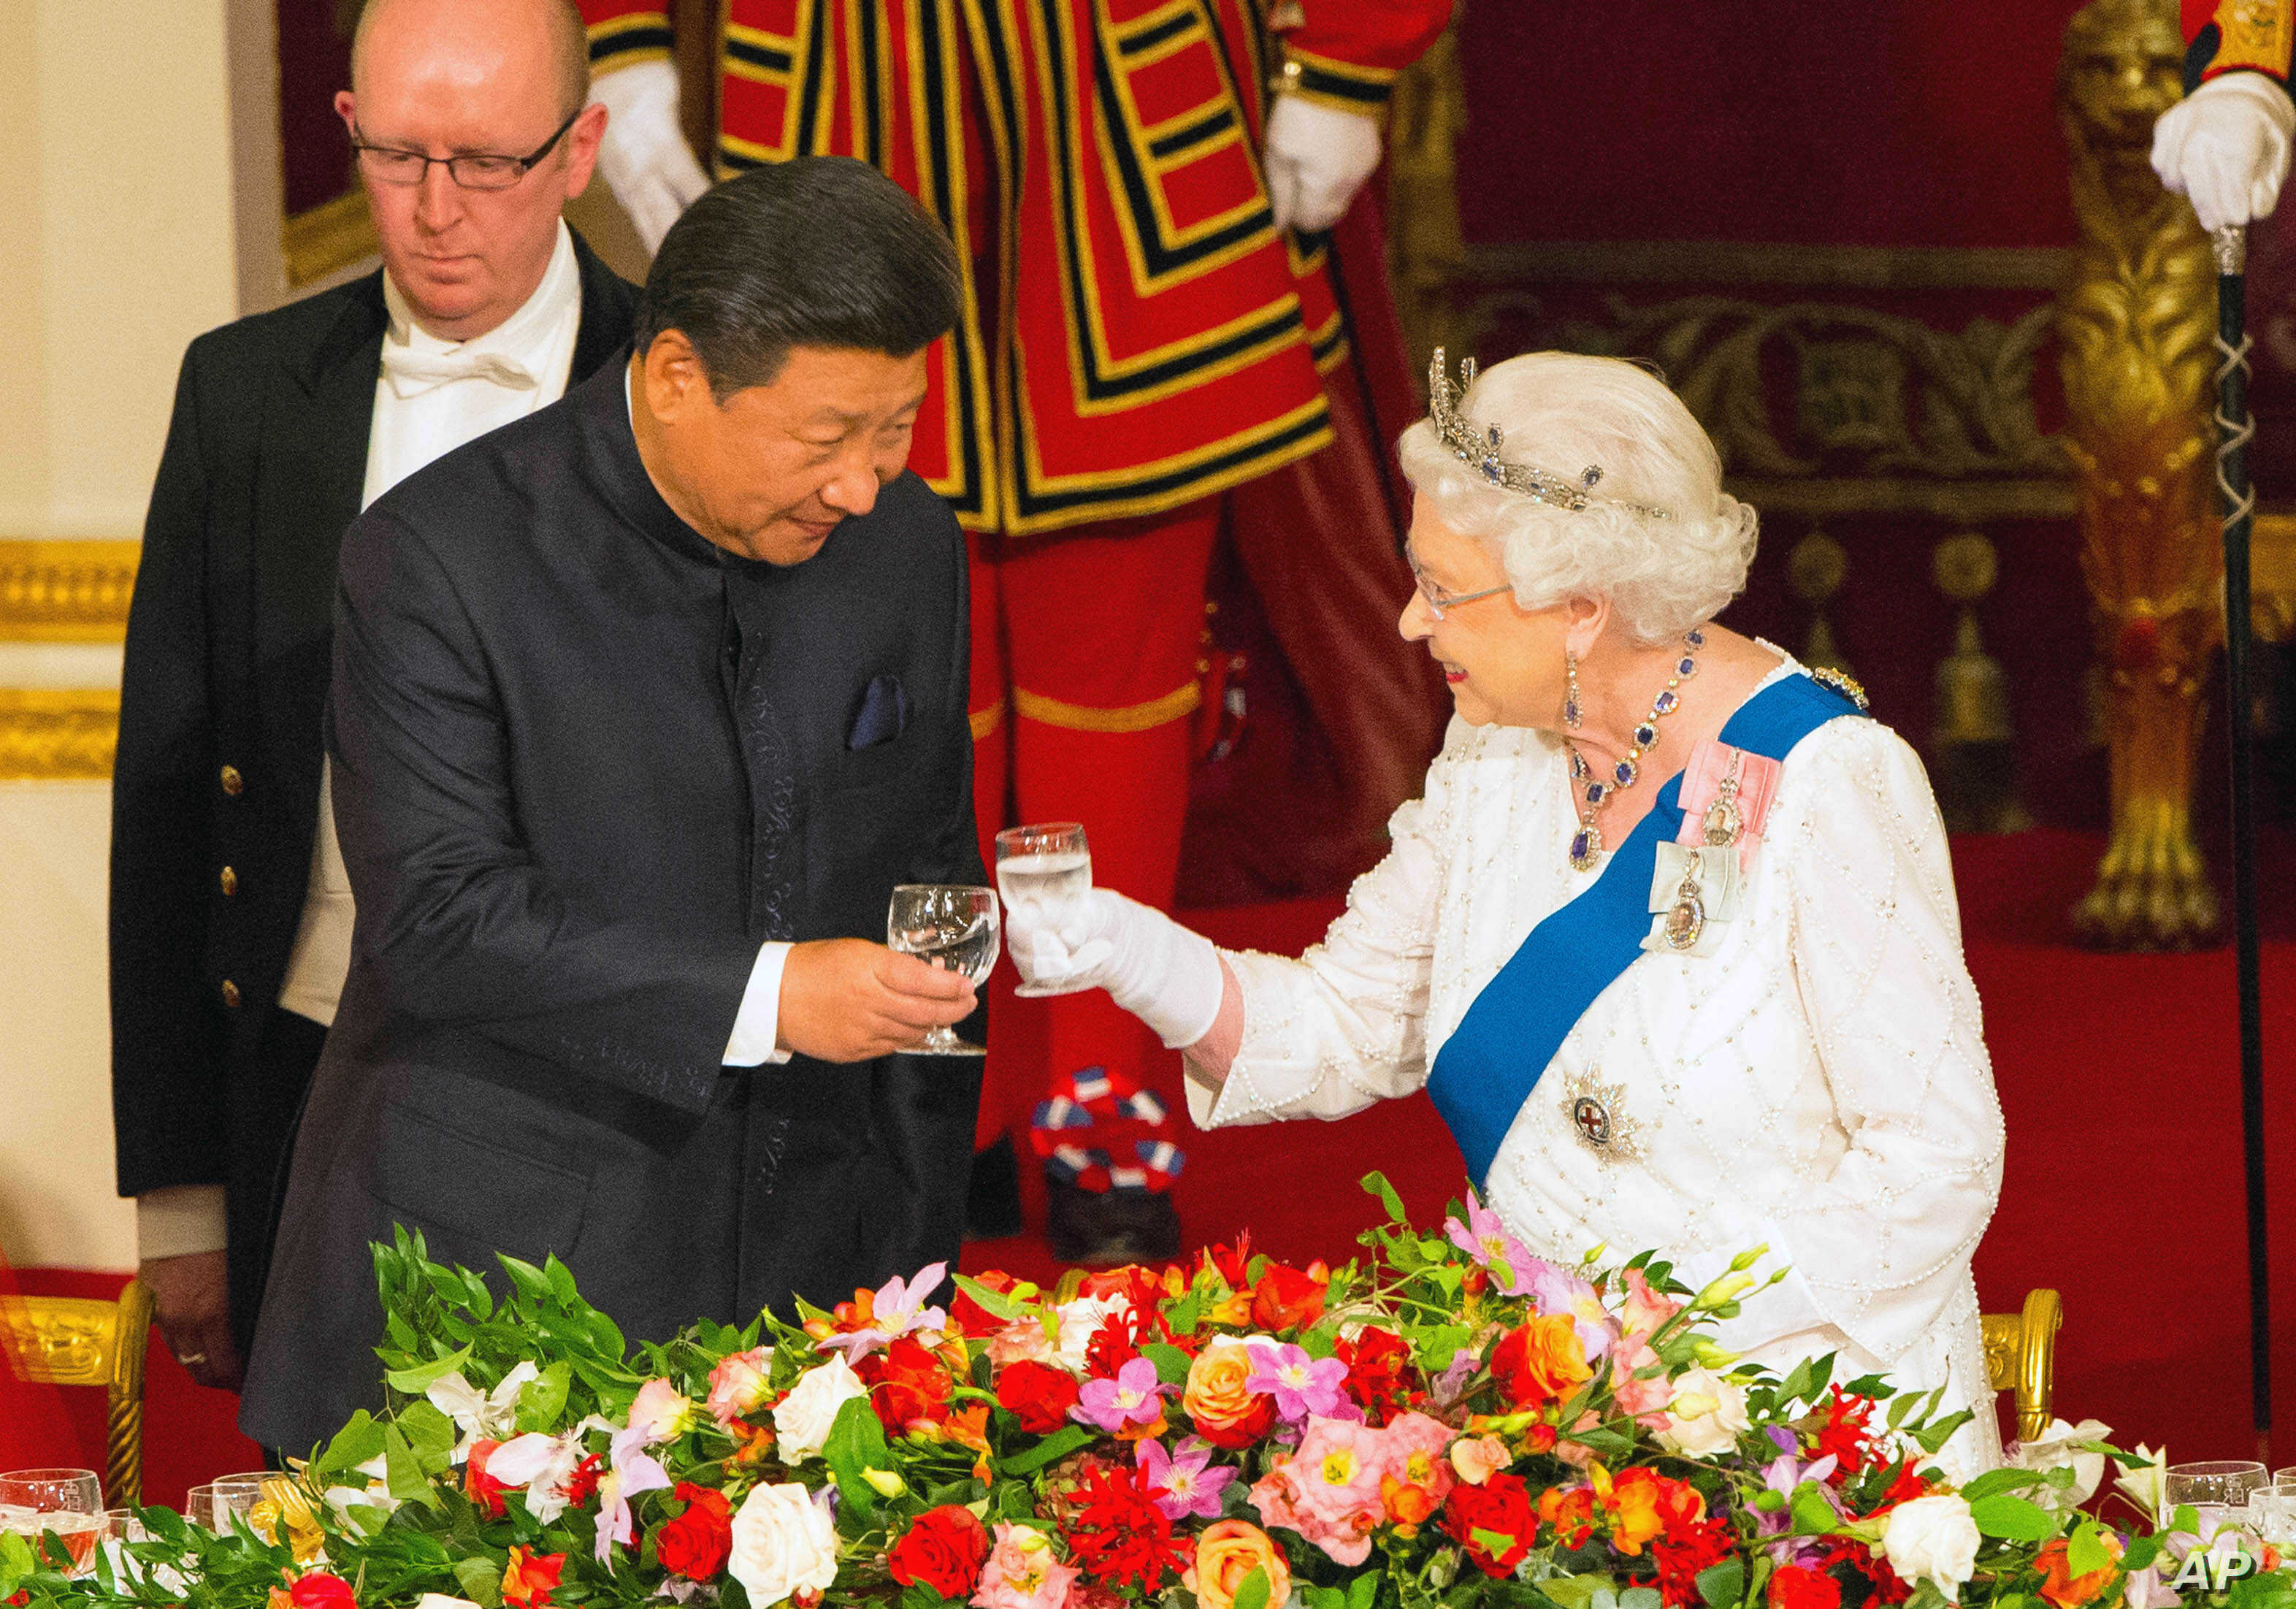 Chinese President Xi Jinping with Queen Elizabeth hosts Chinese President Xi Jinping and his wife Madame Peng Liyuan at a state banquet at Buckingham Palace, London, Oct. 20, 2015.